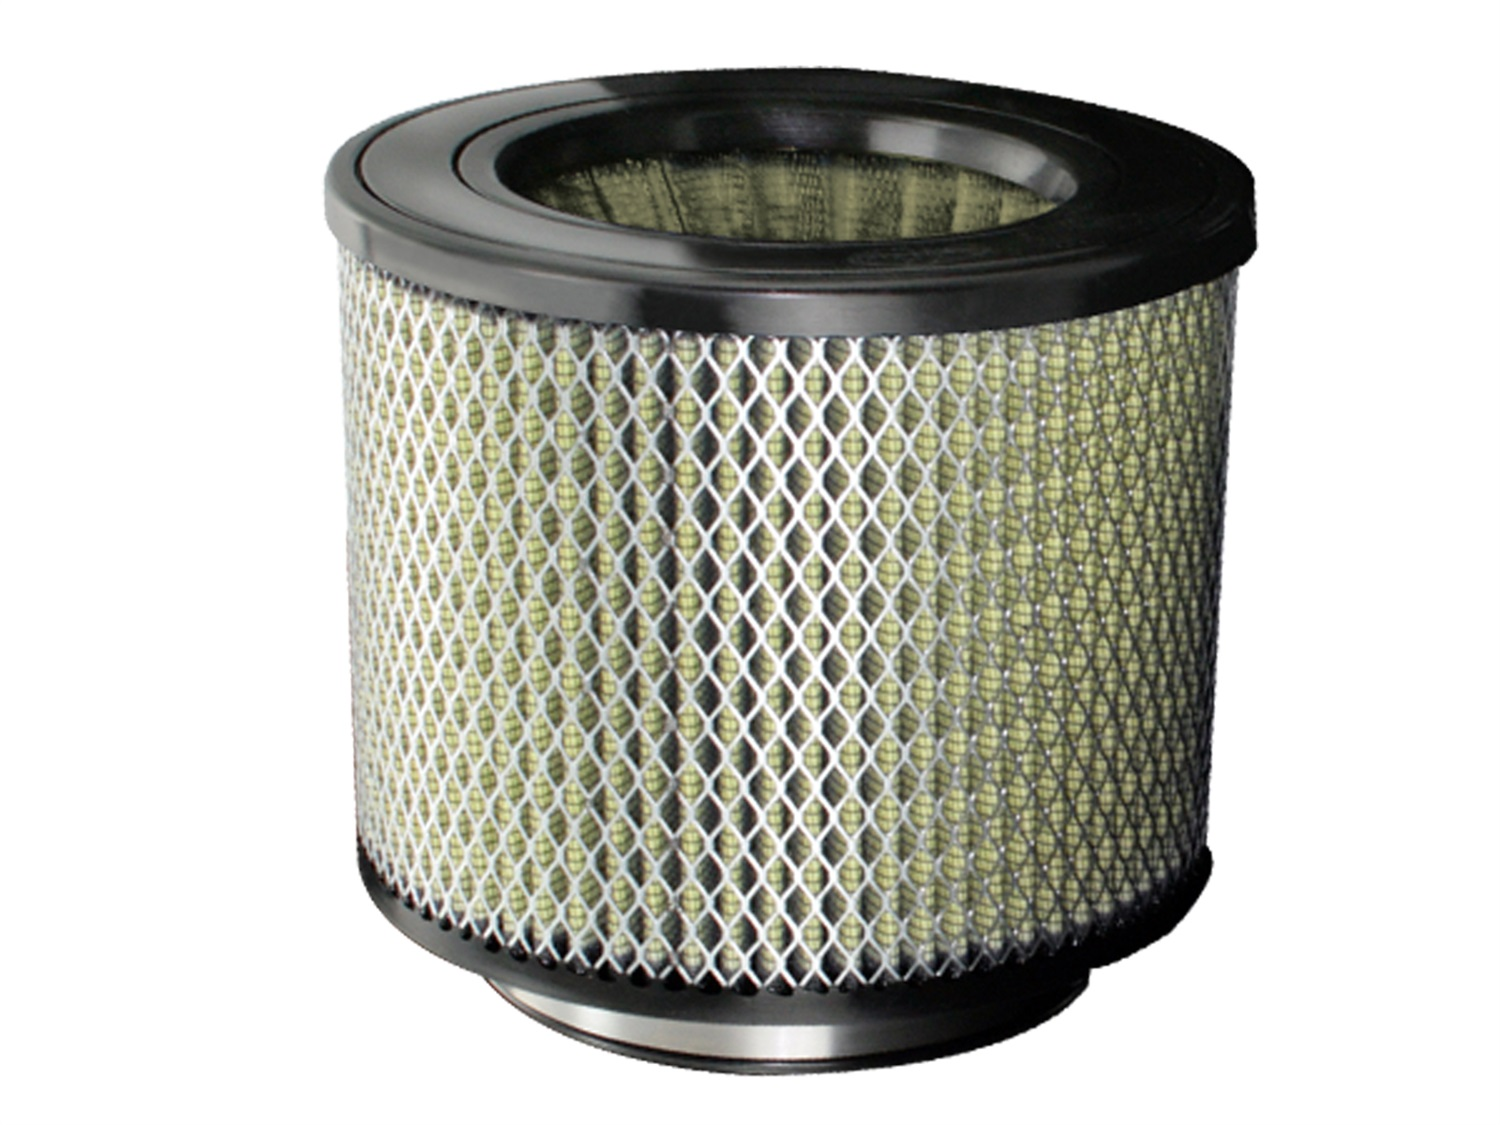 aFe Power 72-91046 MagnumFLOW Intake Pro-GUARD 7 Air Filter 72-91046